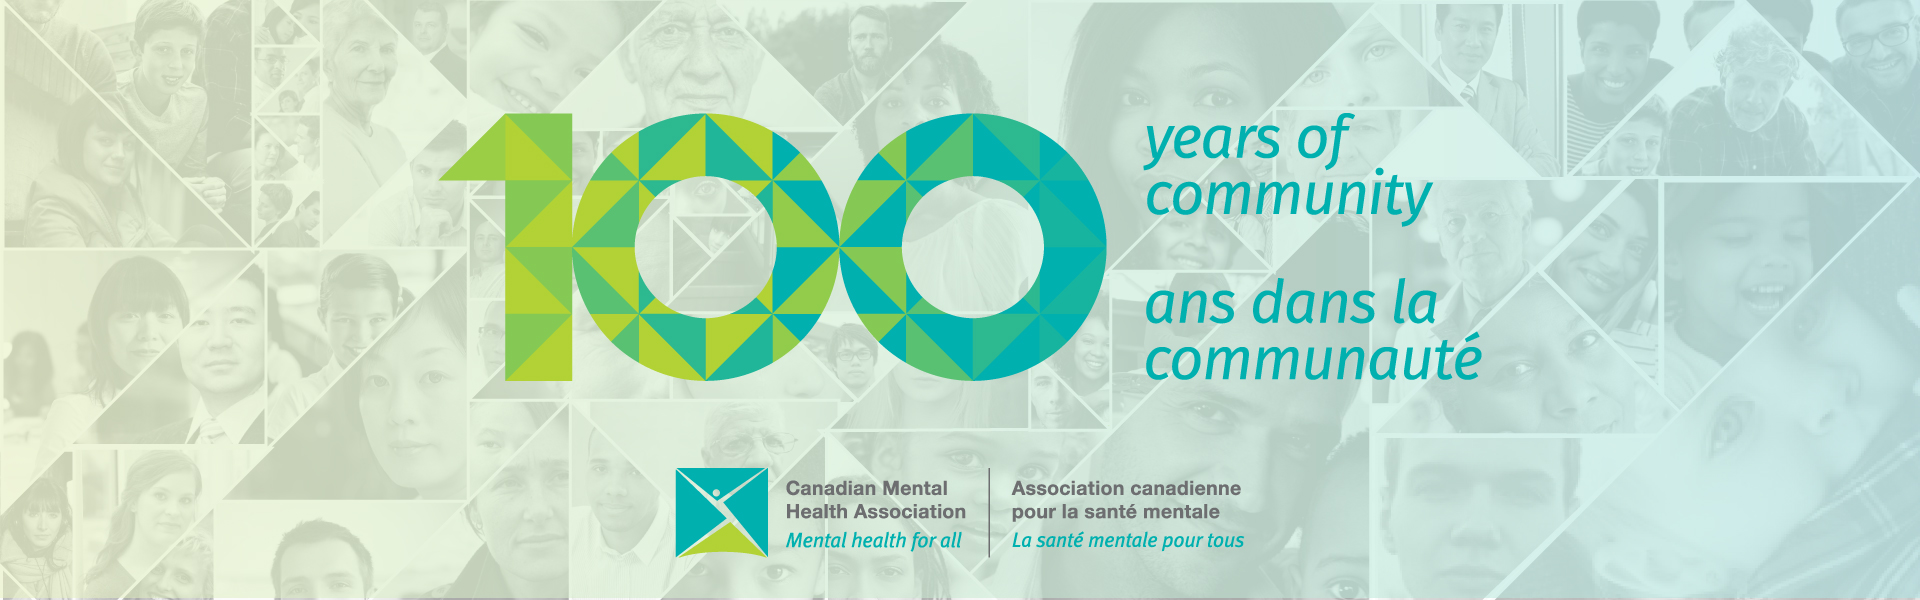 Celebrating 100 years of CMHA